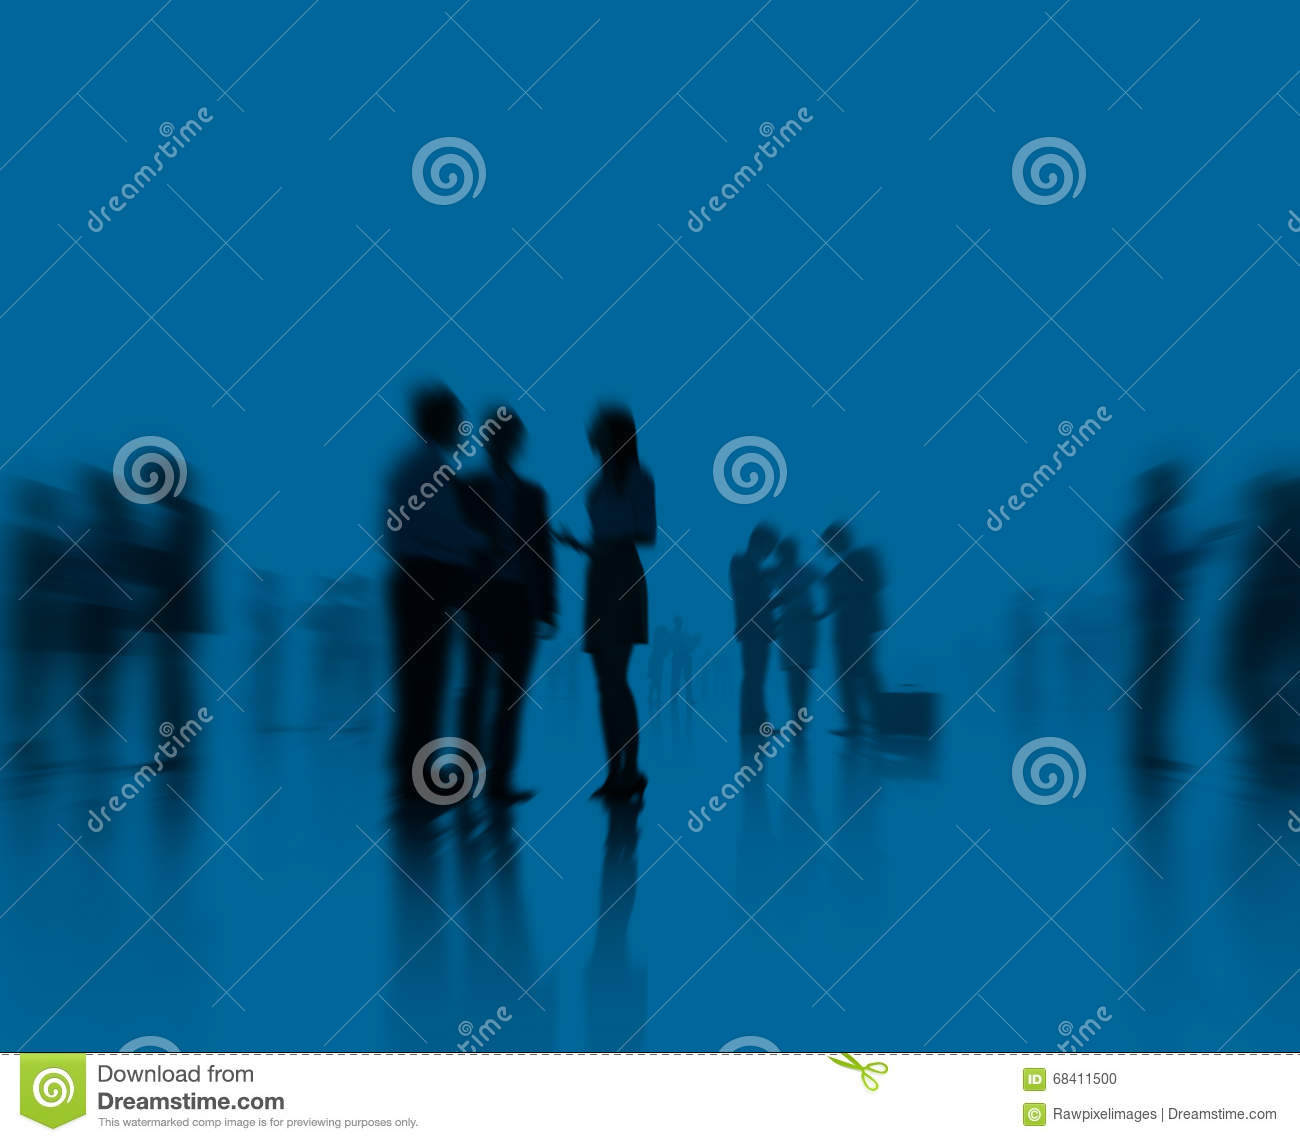 Group Business Meeting Teamwork Collaboration Concept Stock Photo ...